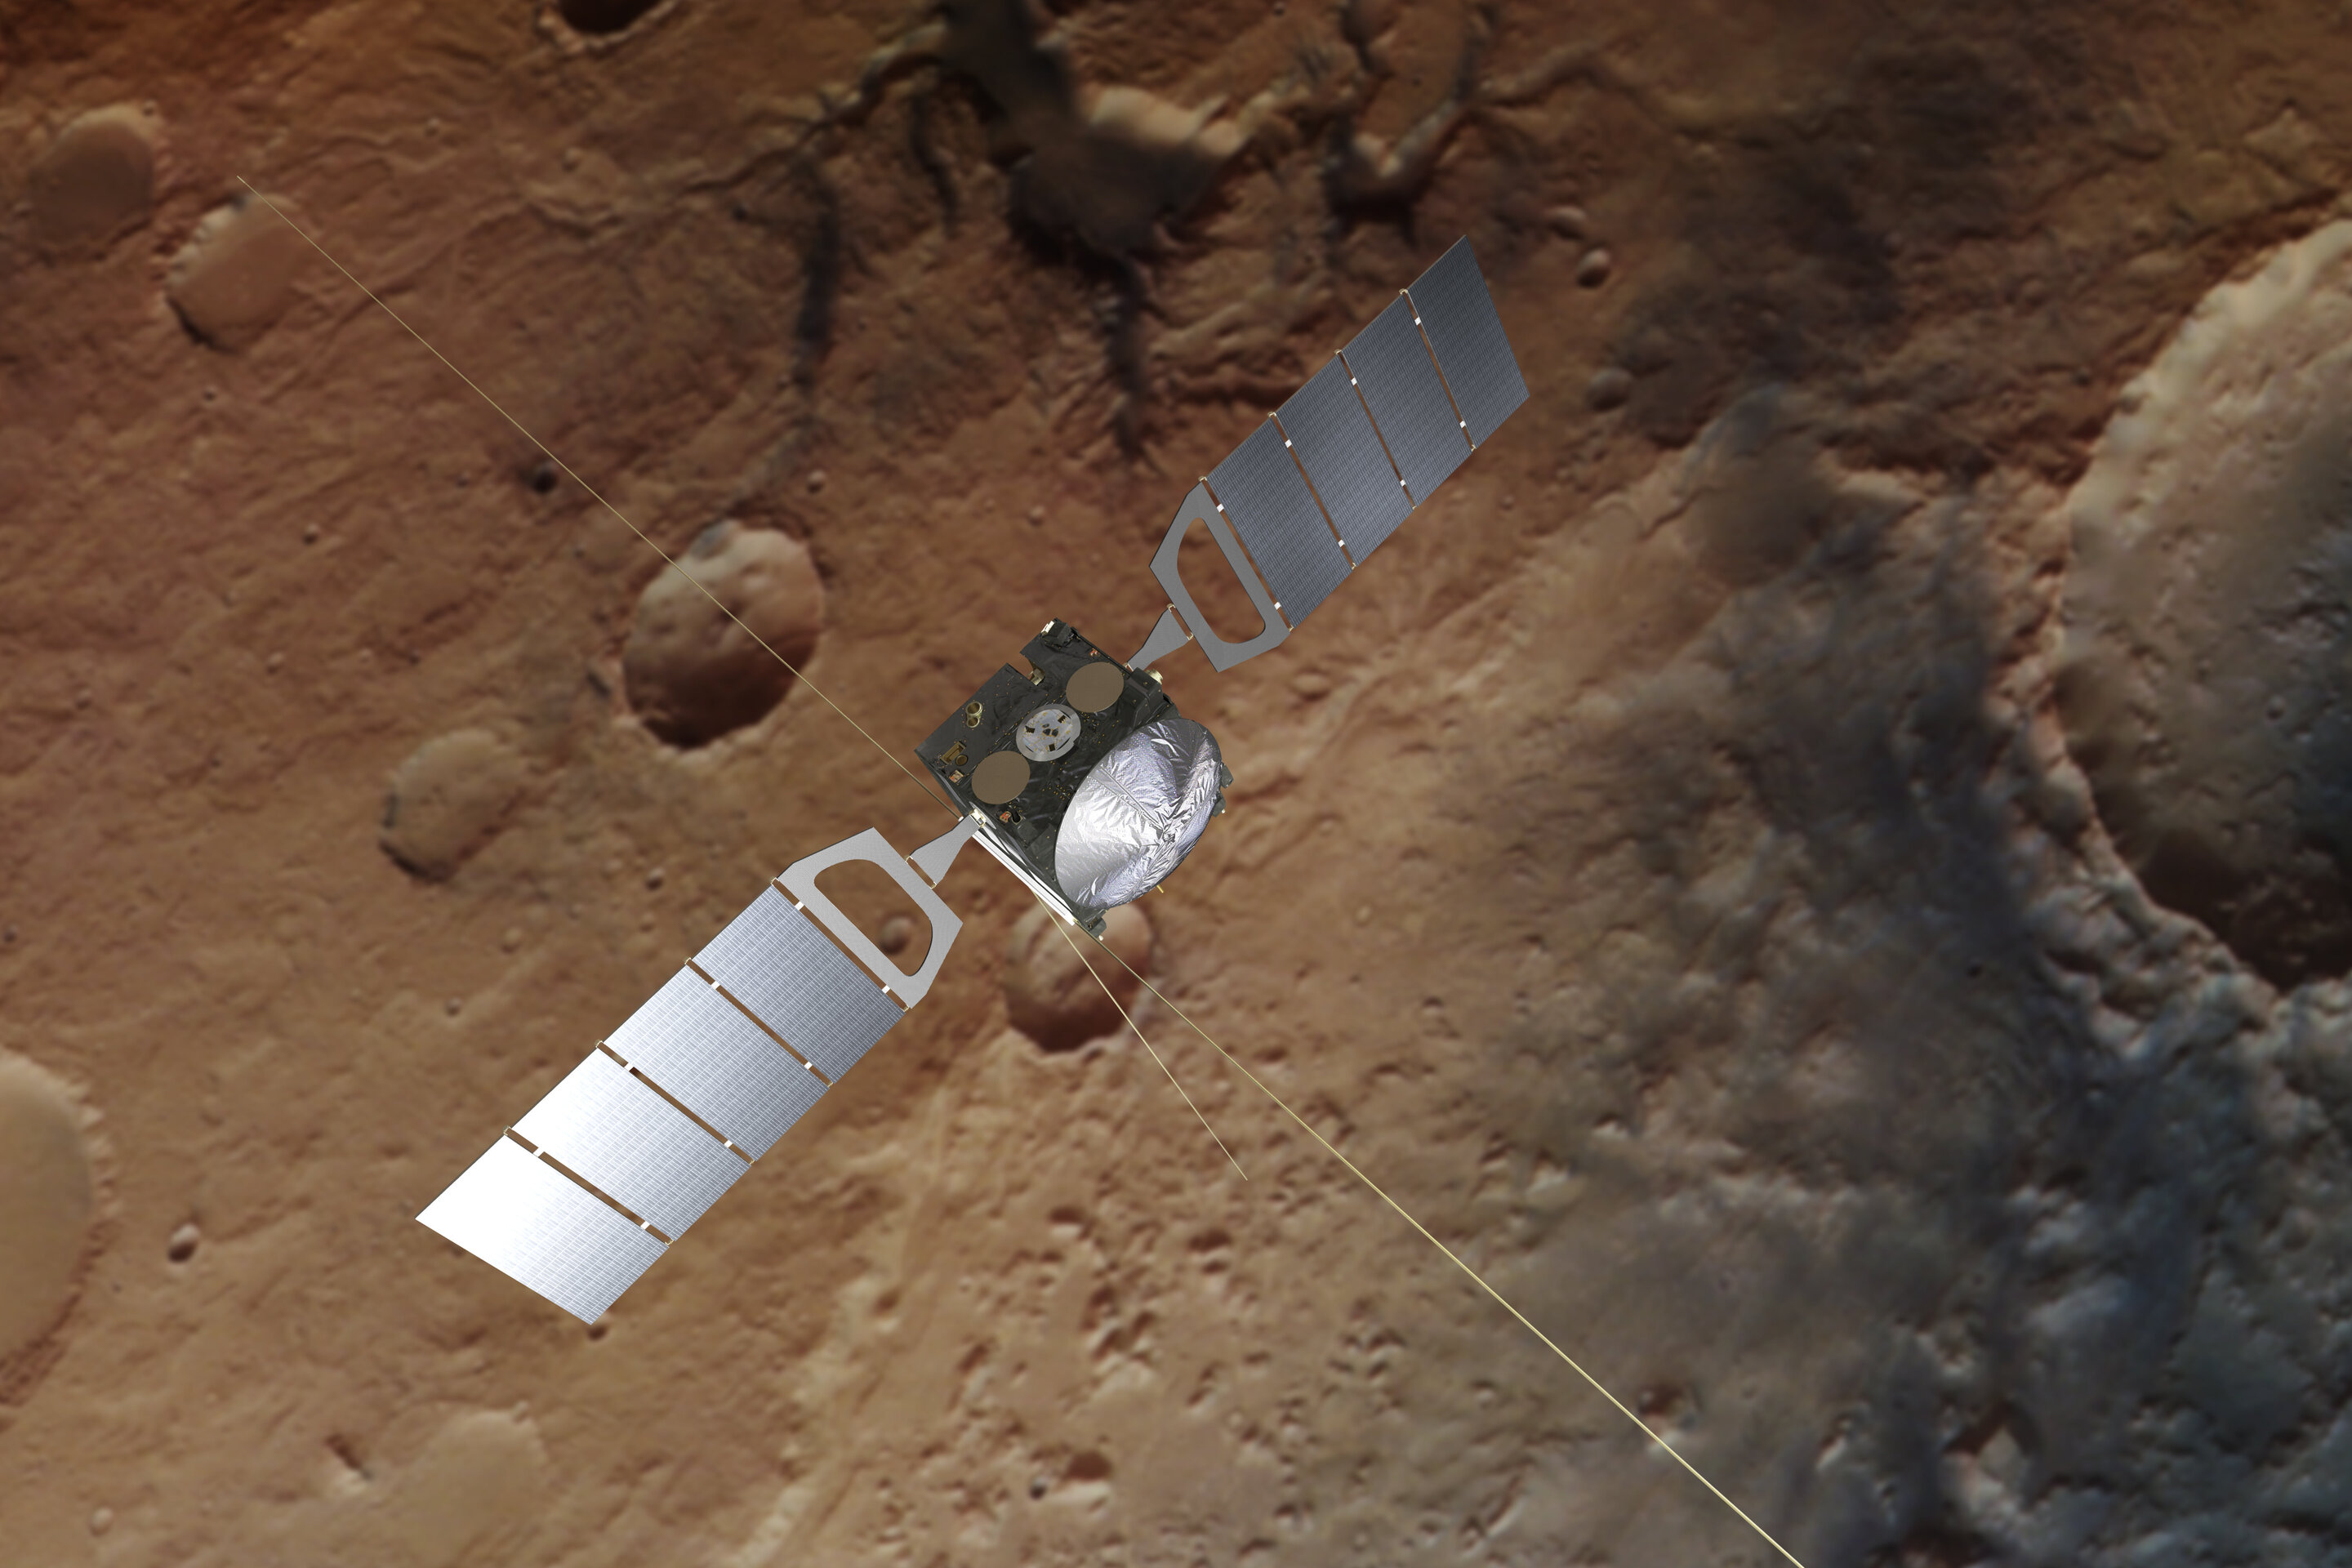 Mars water loss shaped by seasons and storms